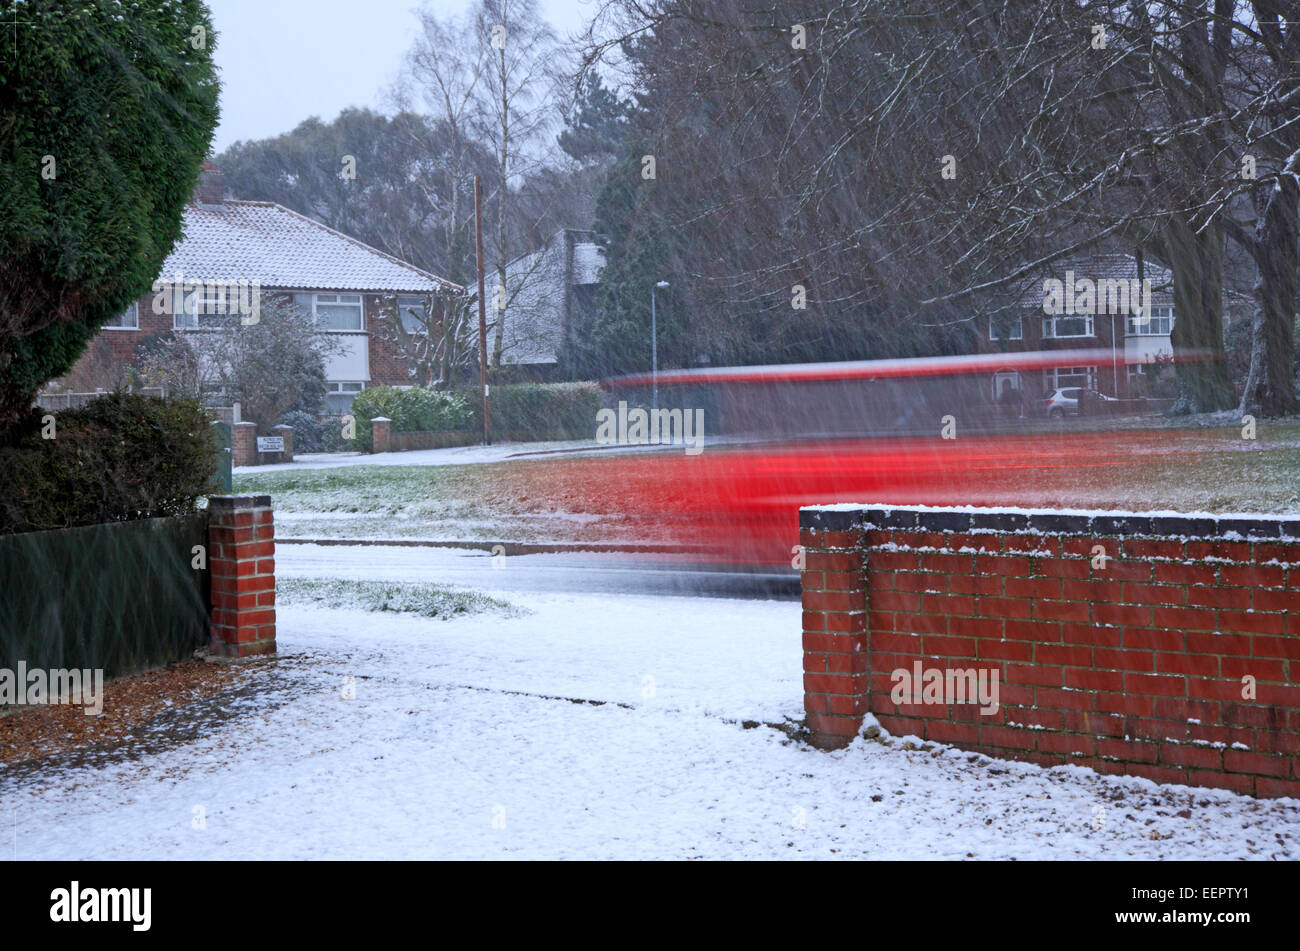 A snow shower with motion blur of car on urban road in Hellesdon, Norfolk, England, United Kingdom. - Stock Image